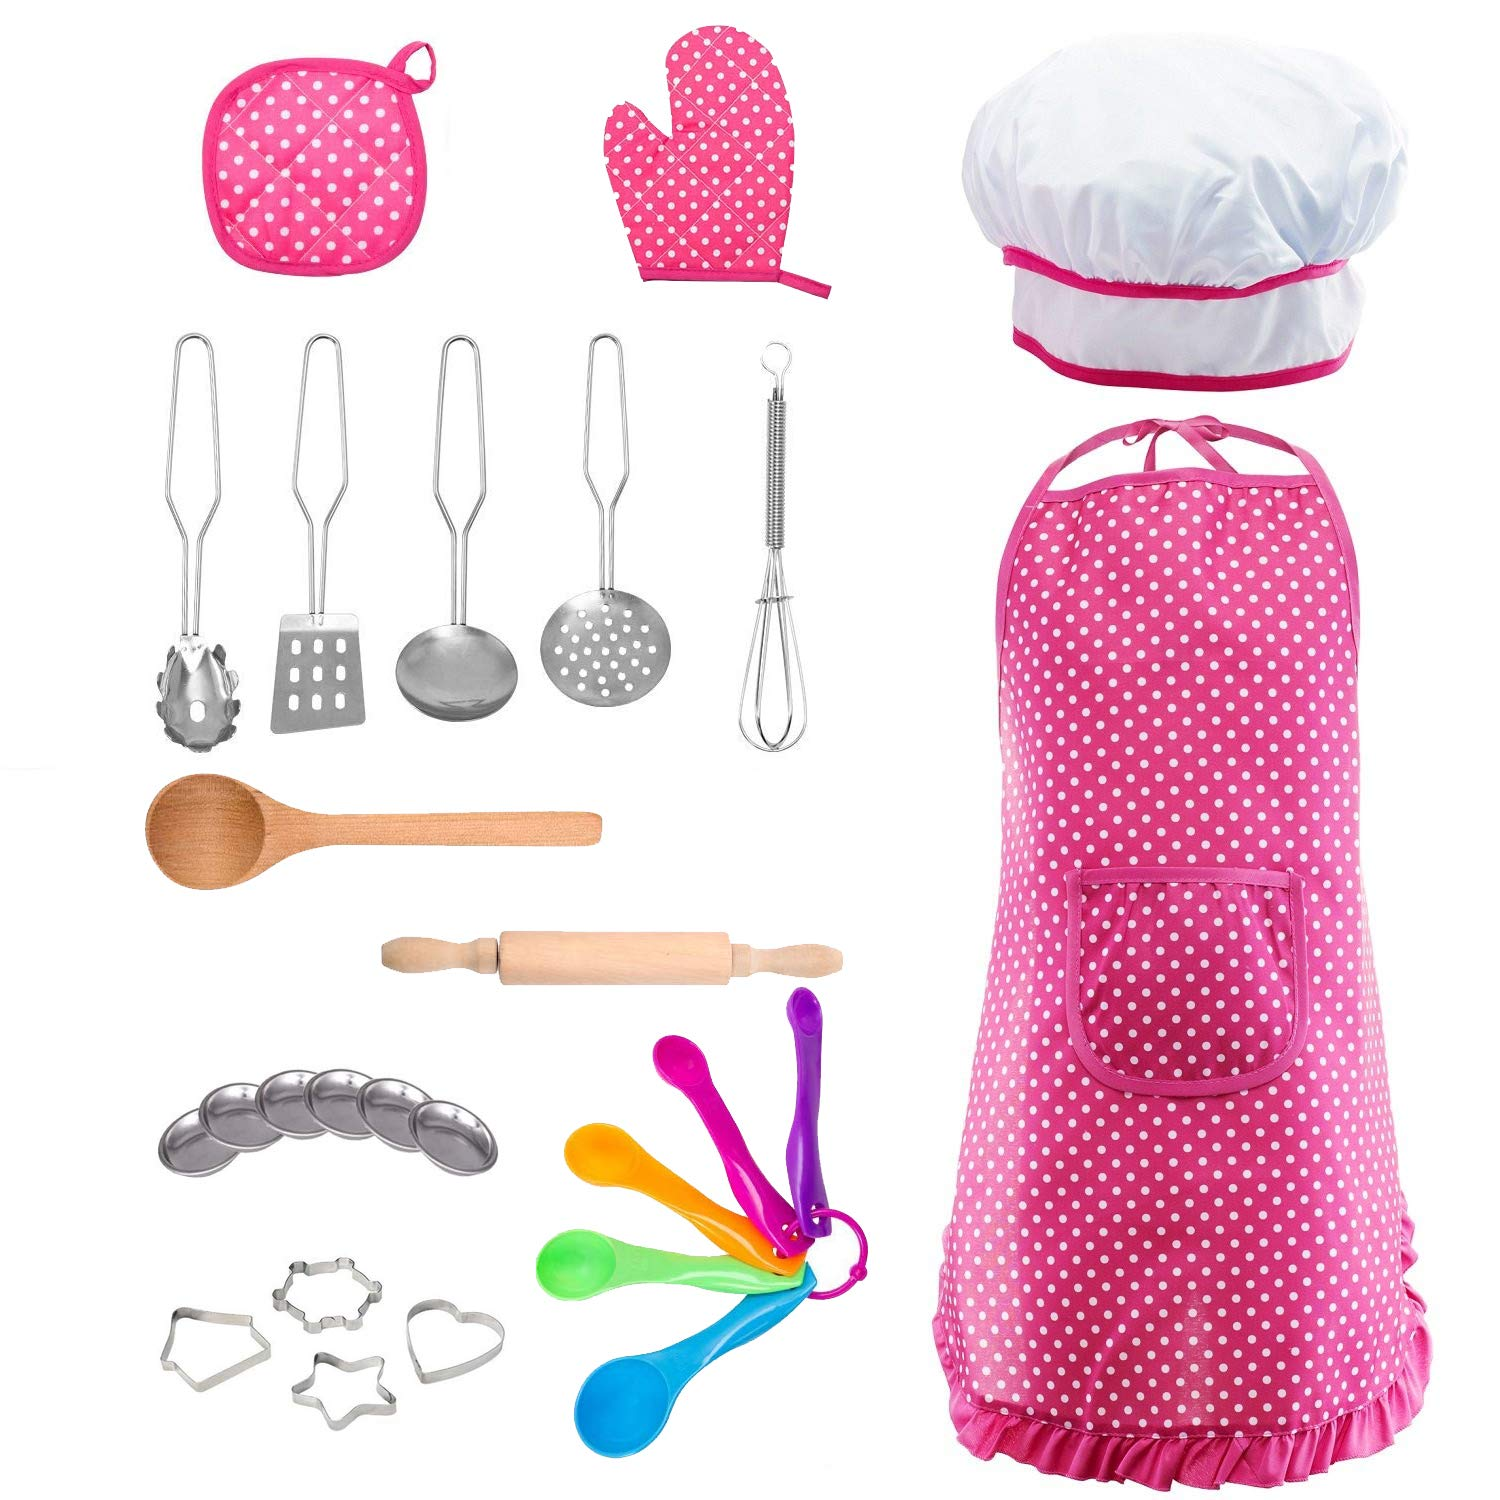 Kids Cooking and Baking Chef Set - 24 Pcs Includes Apron, Chef Hat, Oven Mitt, Pot Holders, Plates, Rolling Pin, Spoon, Cookie Cutters & Baking Utensil for Girls Age 2 3 4 5 6 + Years Old Kids Toys by niolio